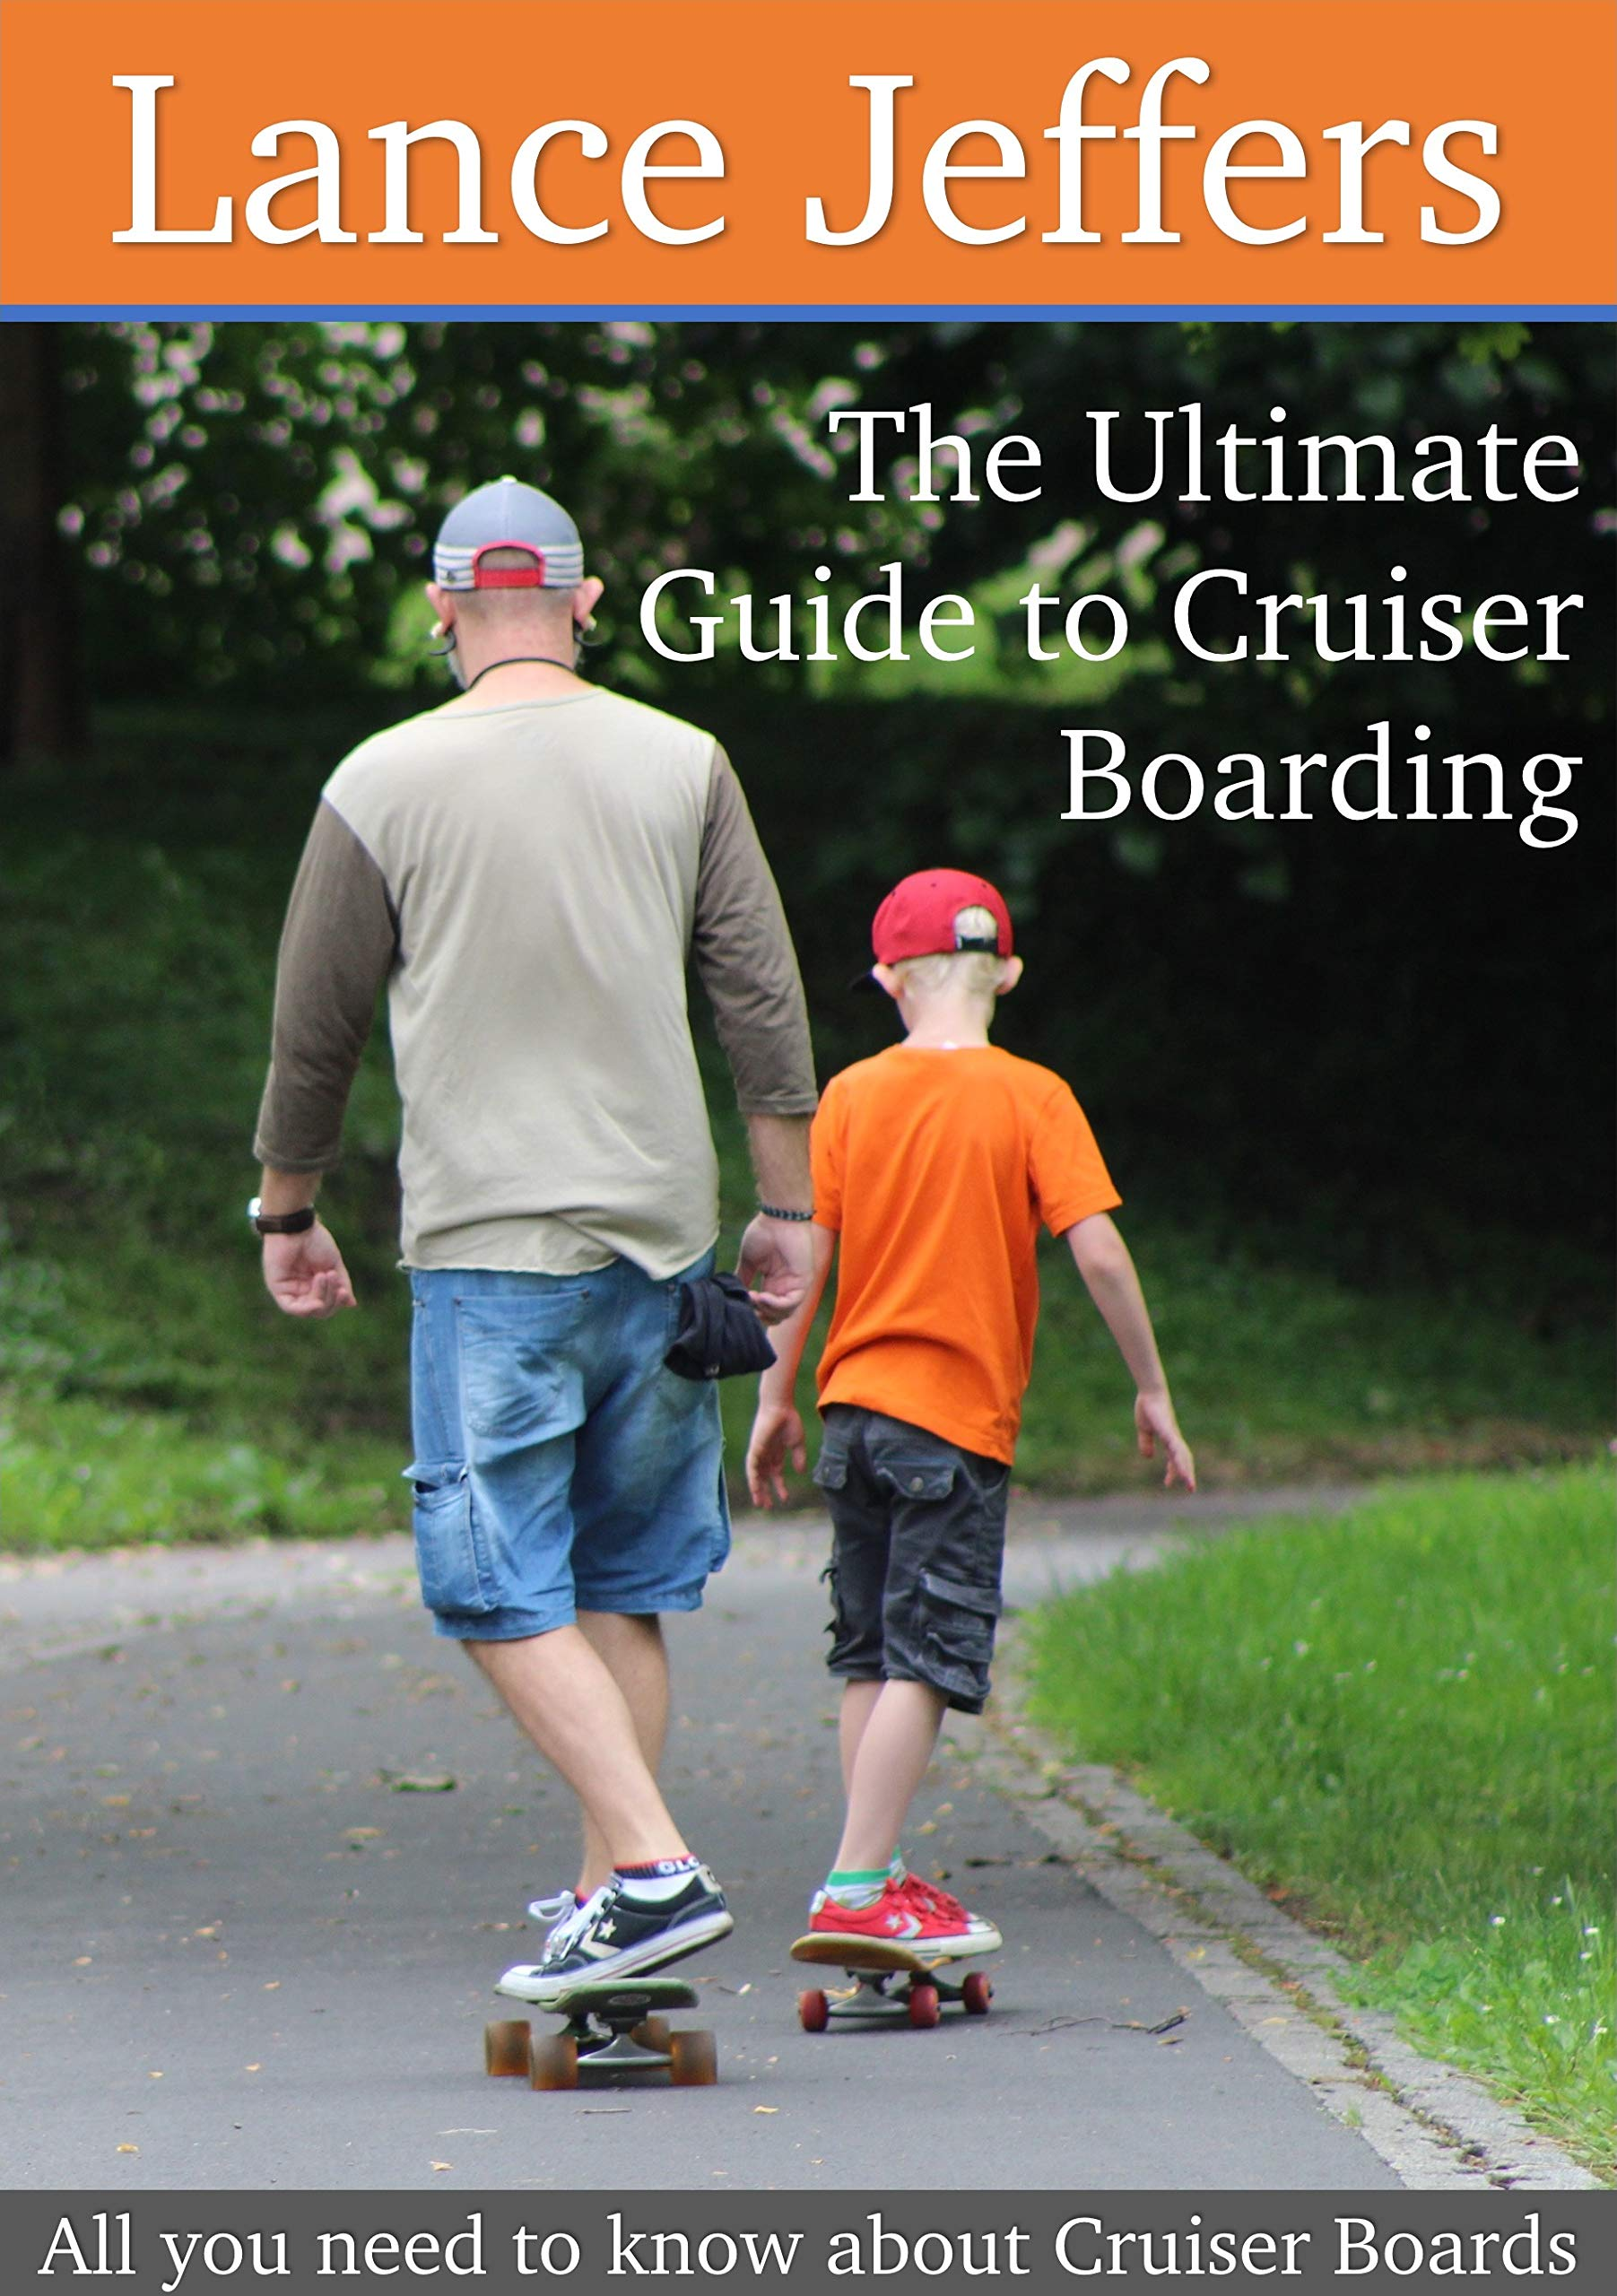 The Ultimate Guide to Cruiser Boarding Boarding (Tips, Tricks, How To's, Reviews and More!): All you need to know about Cruiser Boards